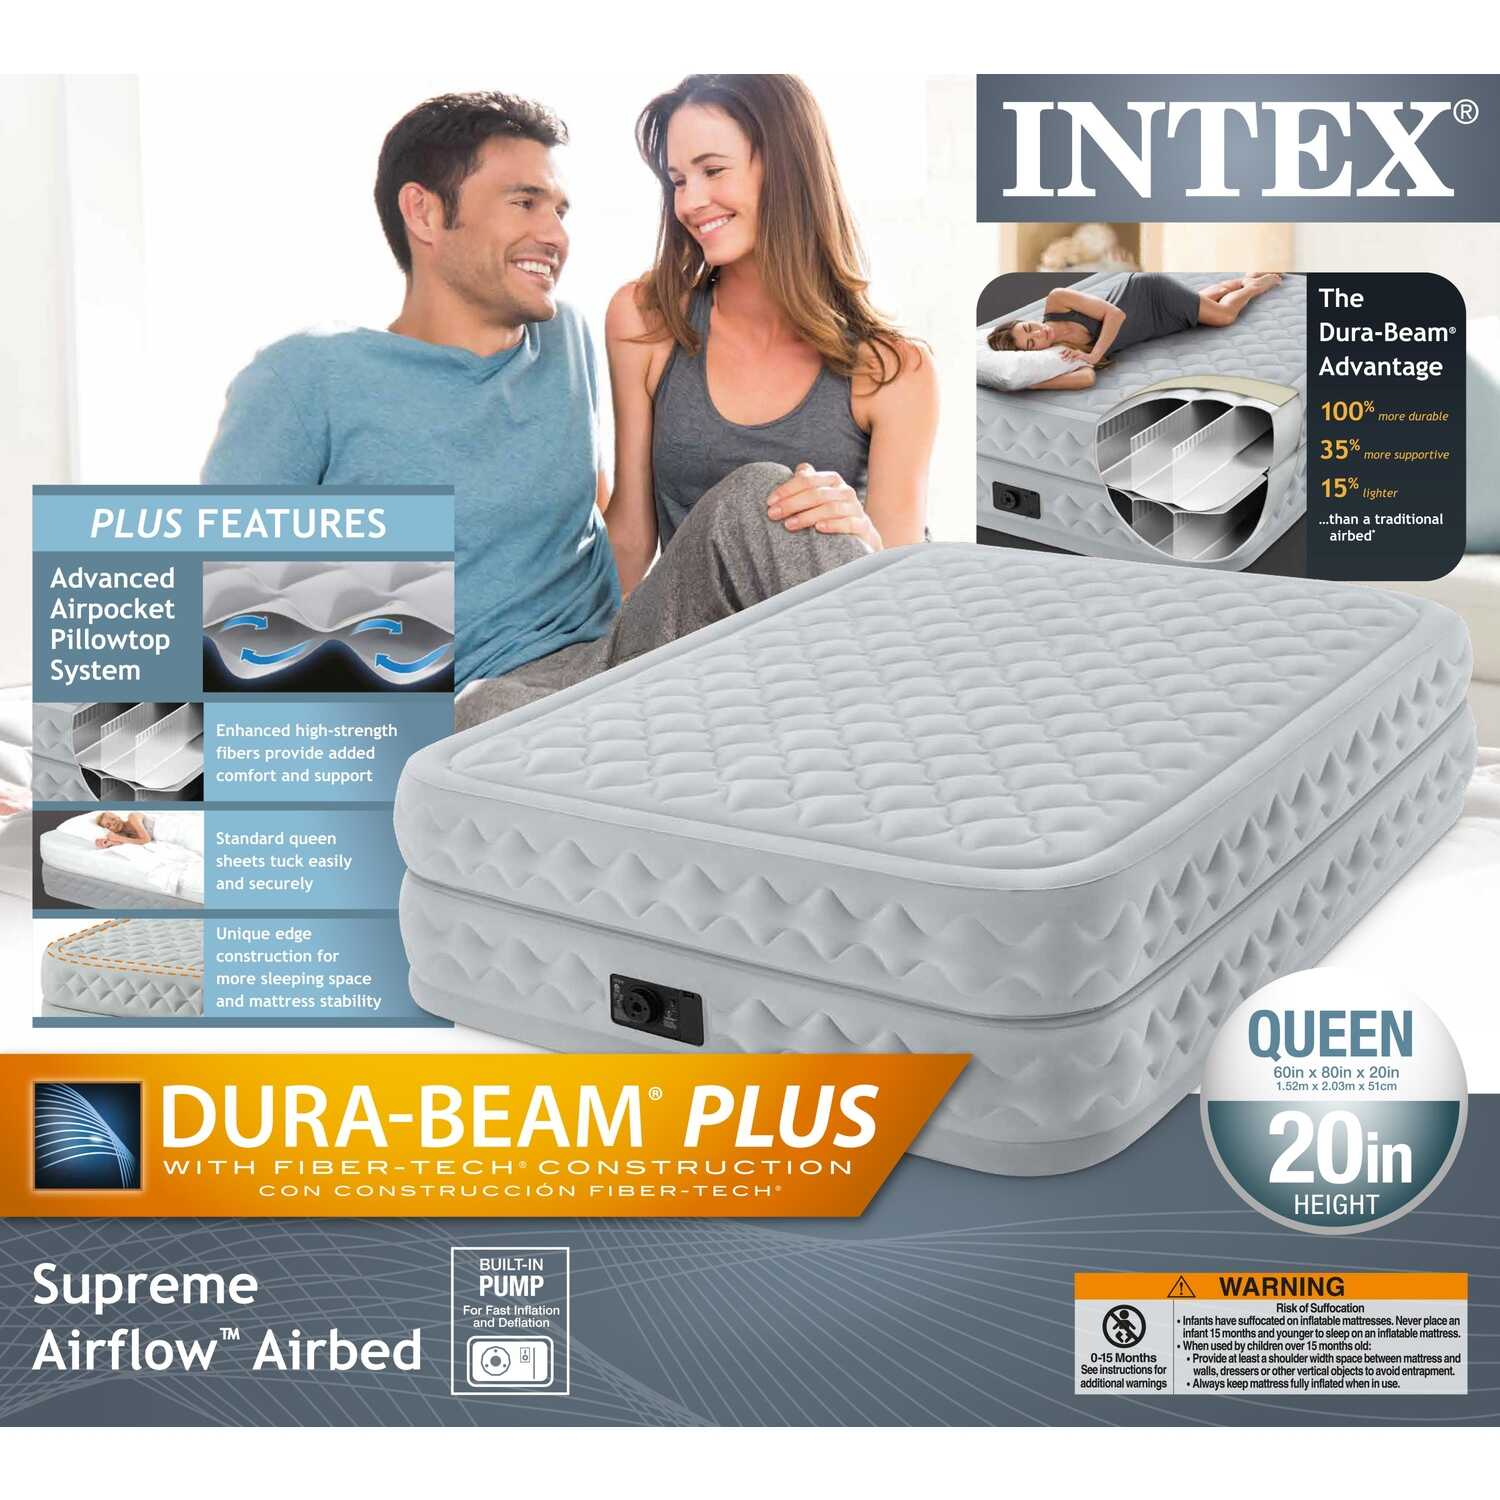 Intex  Dura-Beam Supreme Air-Flow  Air Mattress  Queen  Pump Included